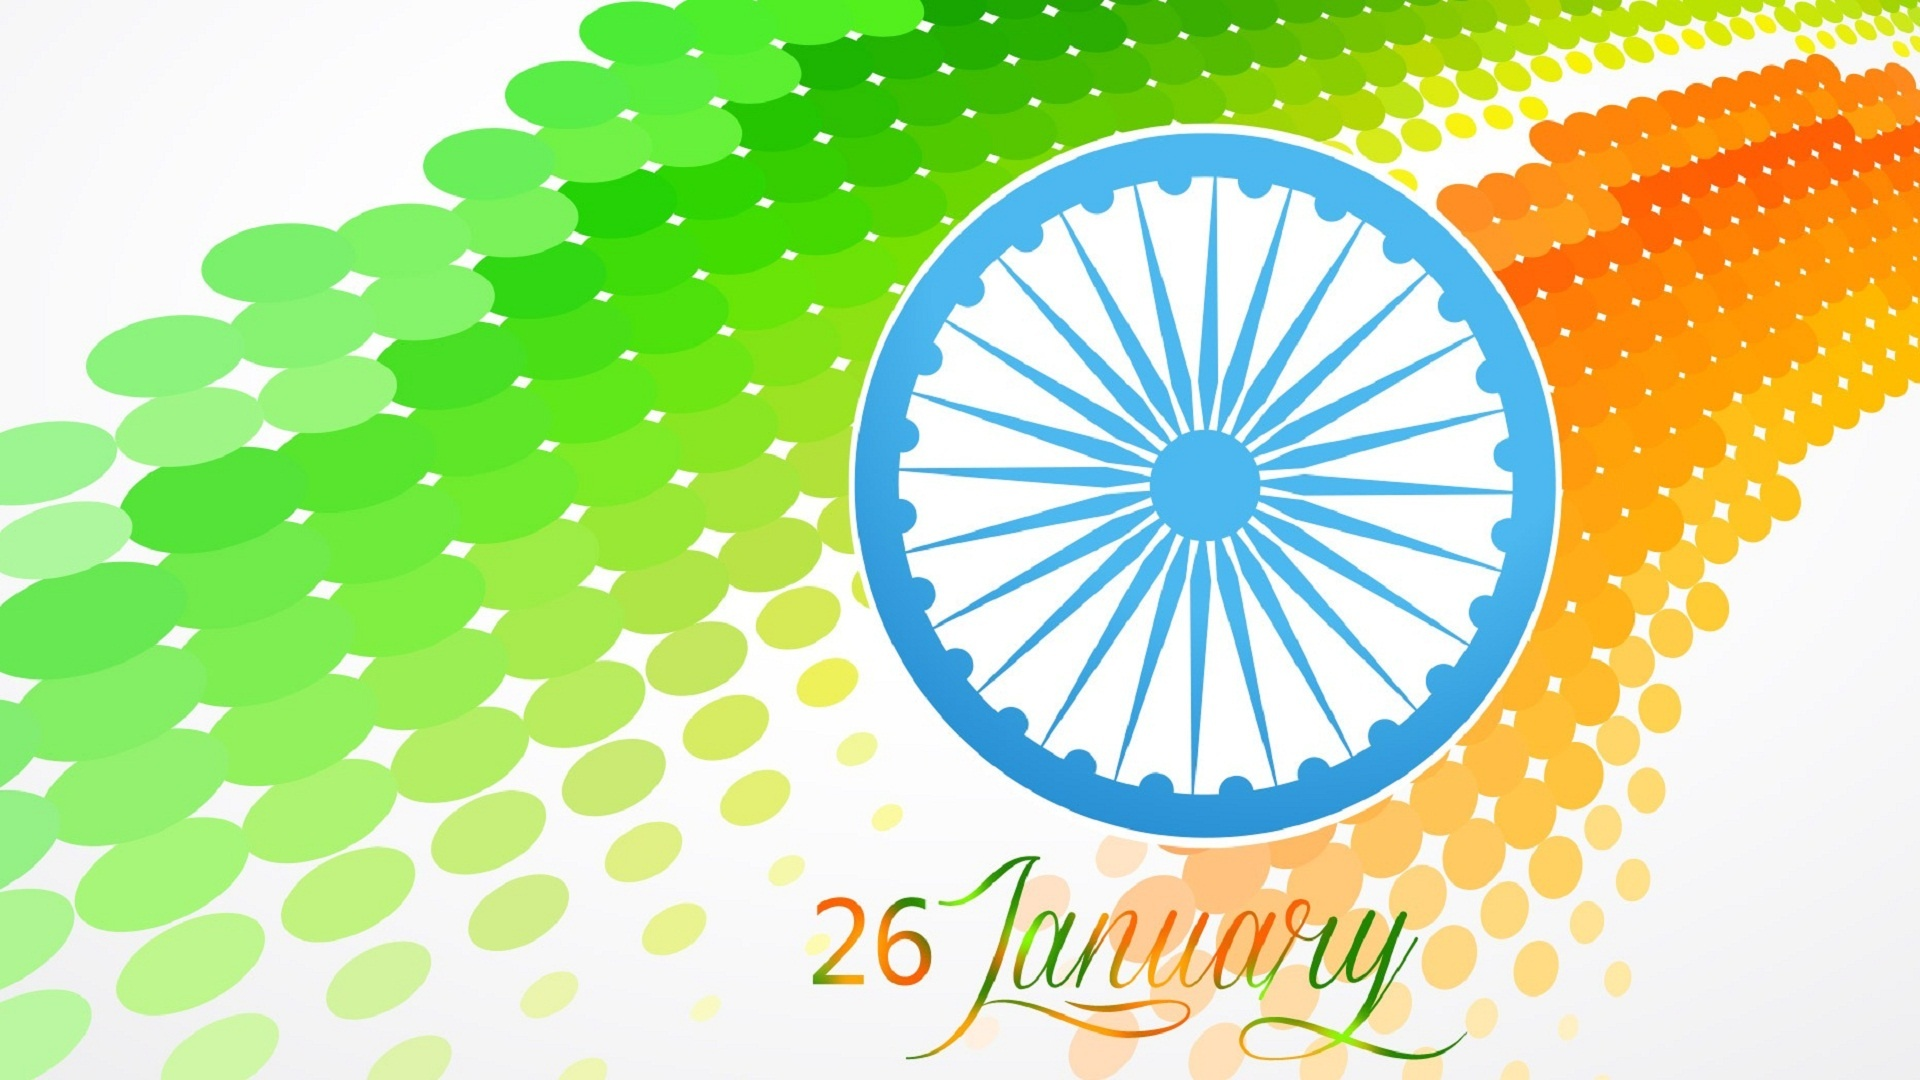 Indian Flag Images Accessories For Republic Day 26 January